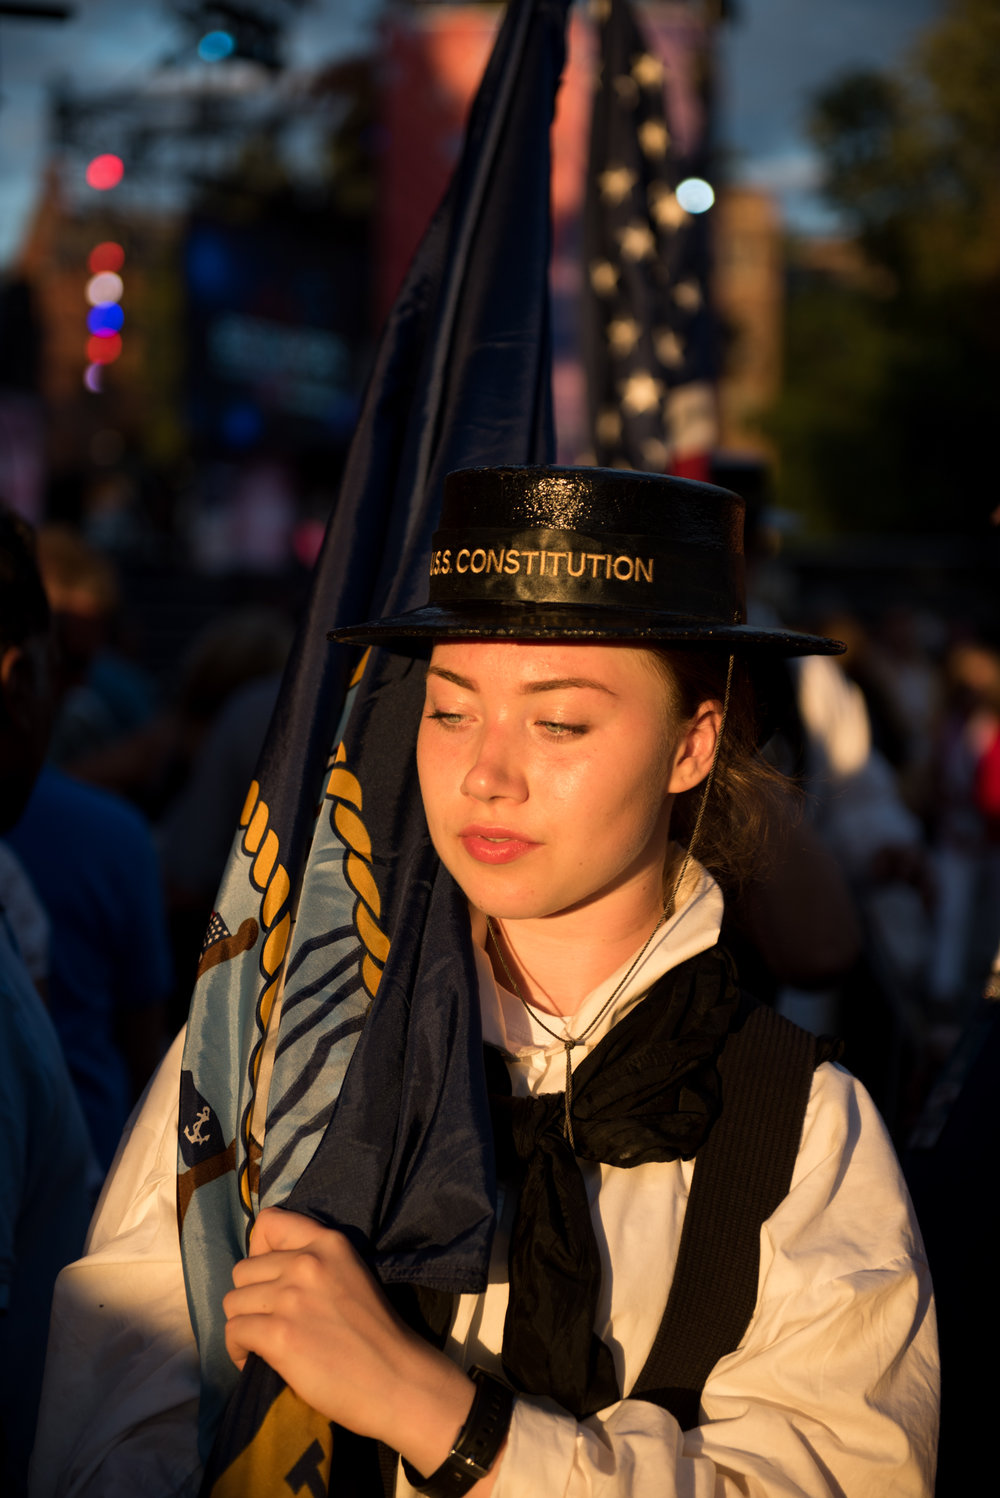 Boston, MA - 7/4/17 - Sydney Donovan, an active duty Navy sailor on the USS Constitution carries out a flag during the Fourth of July Pops celebration on the Esplanade on Tuesday, July 4, 2017. (Nicholas Pfosi for The Boston Globe) Topic: 05IndepenceDaypic